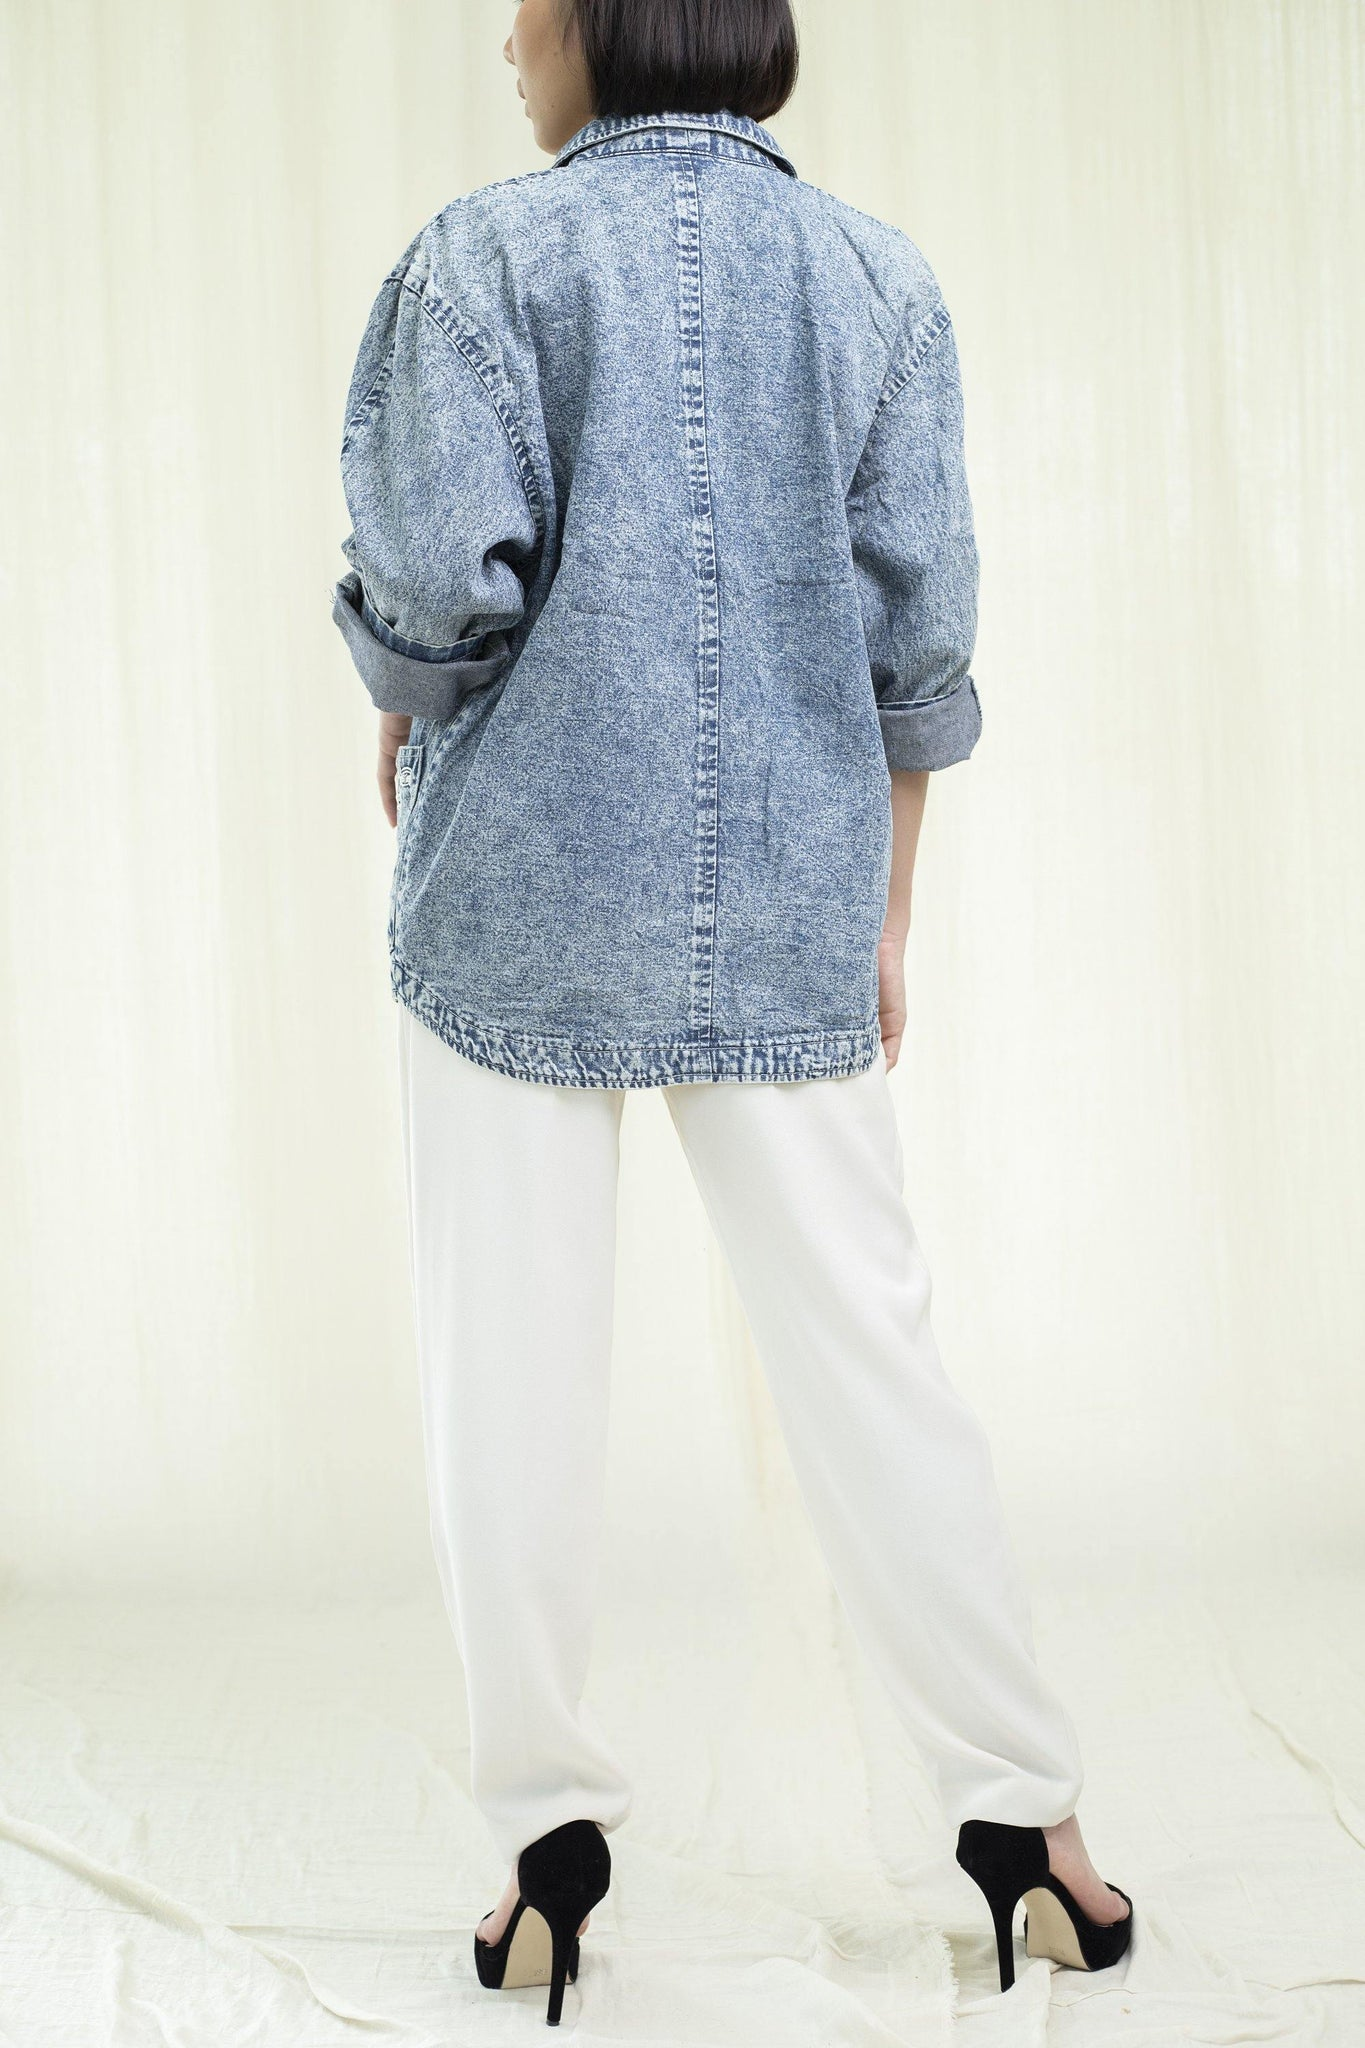 Maxi denim jacket | White embroidery | Vintage 1980s - Sugar & Cream Vintage